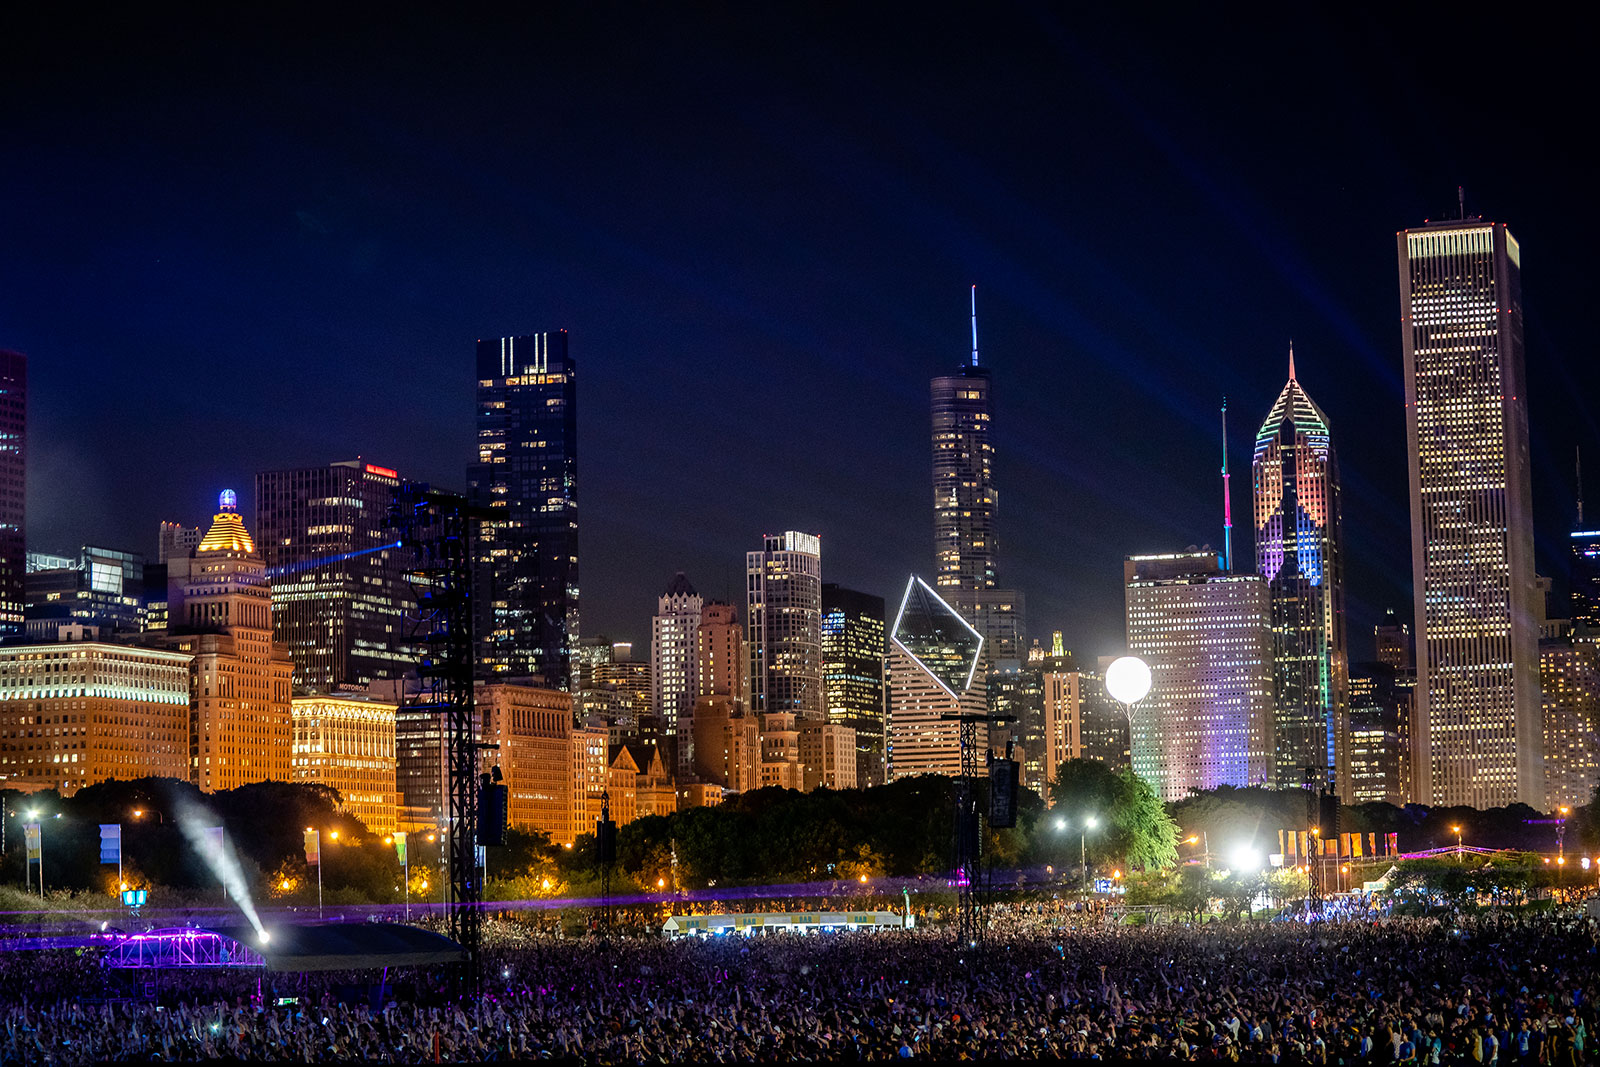 People attend the Lollapalooza music festival in 2019.